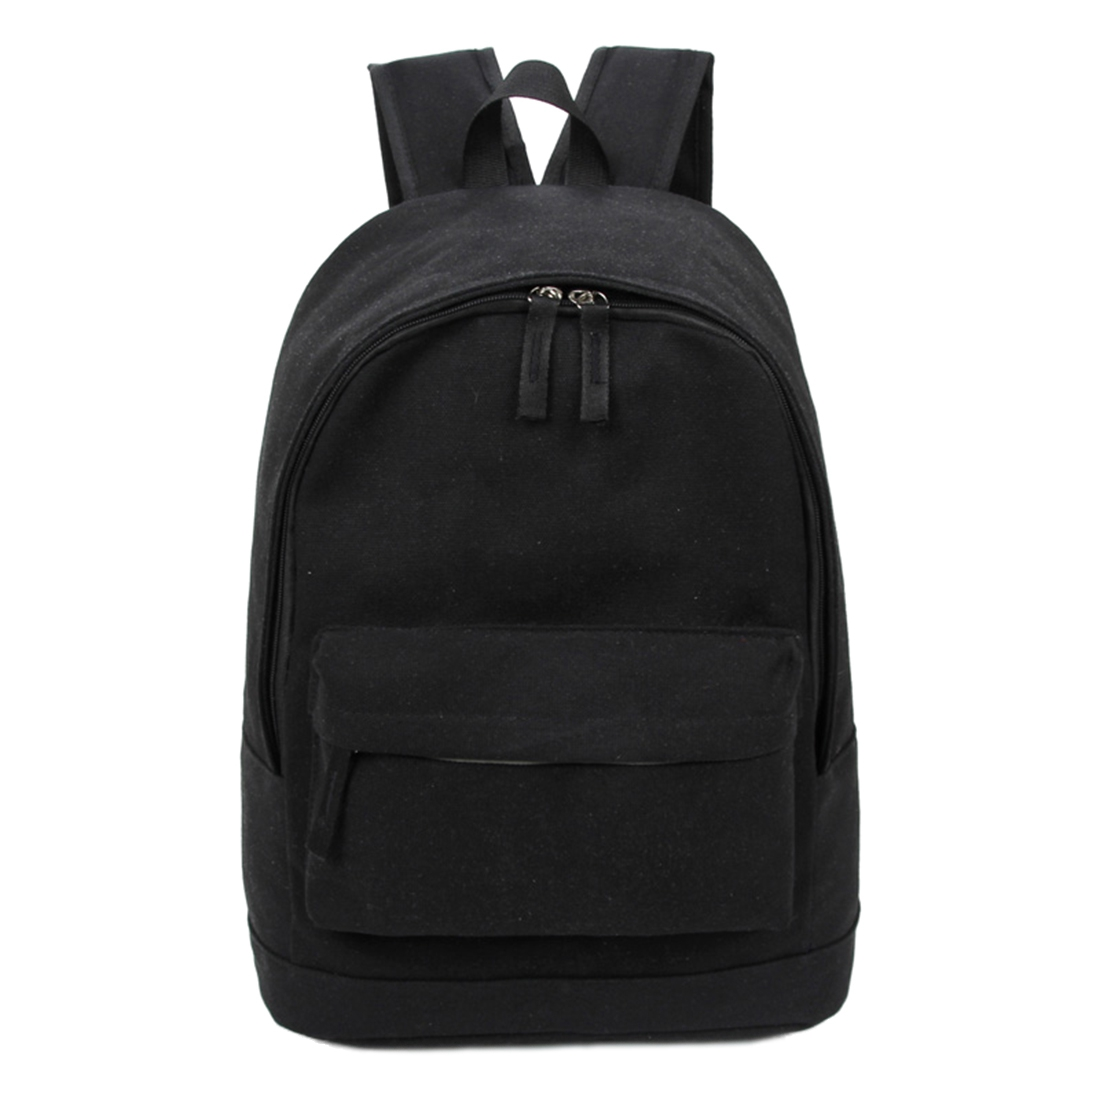 Korea Style Fashion Backpack for Men and Women Preppy Style Soft Back Pack Unisex School Bags Big Capacity Canvas Bag korea style fashion backpacks for men and women waterproof preppy style soft backpack unisex school bags big capacity bag xa893b